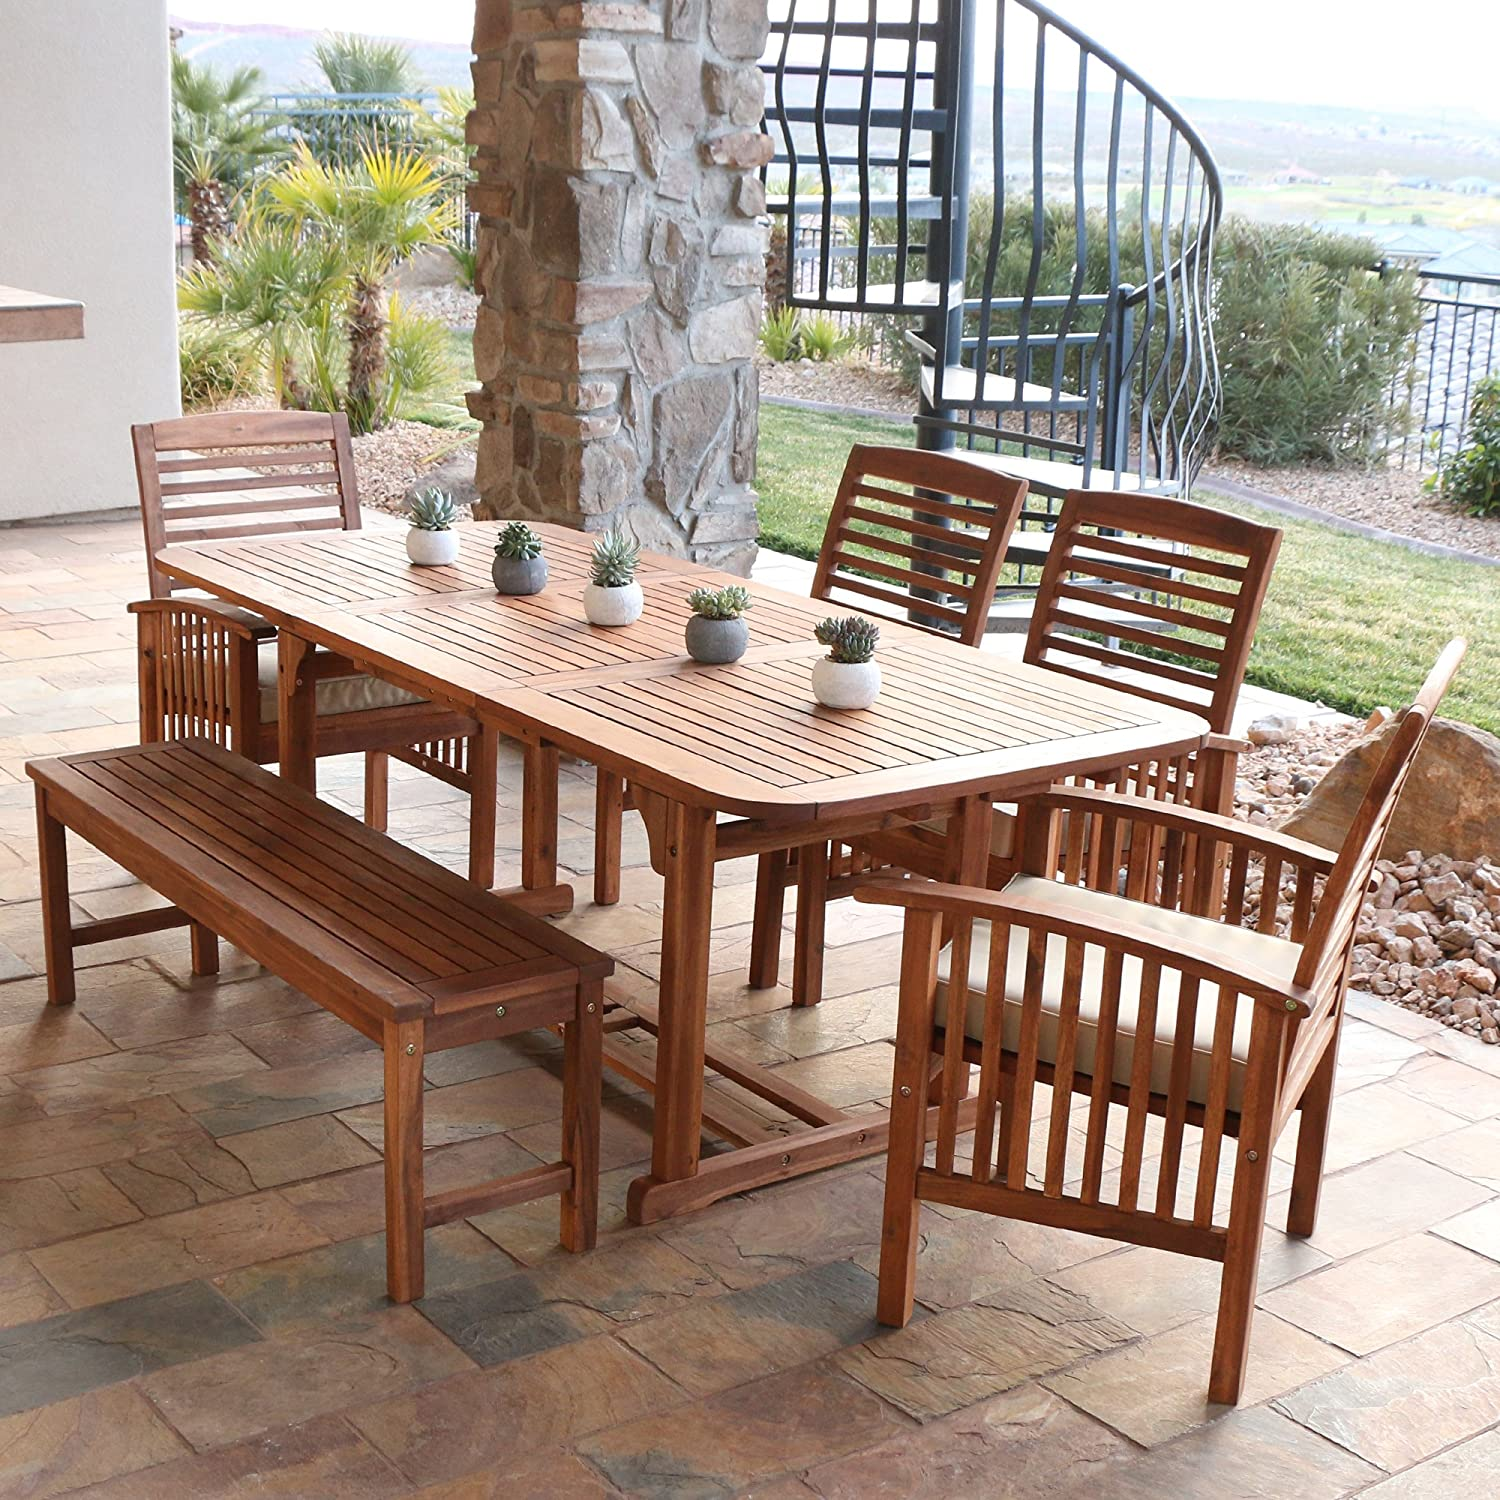 bella belham product seats cfm living set master wicker all patio piece dining hayneedle weather